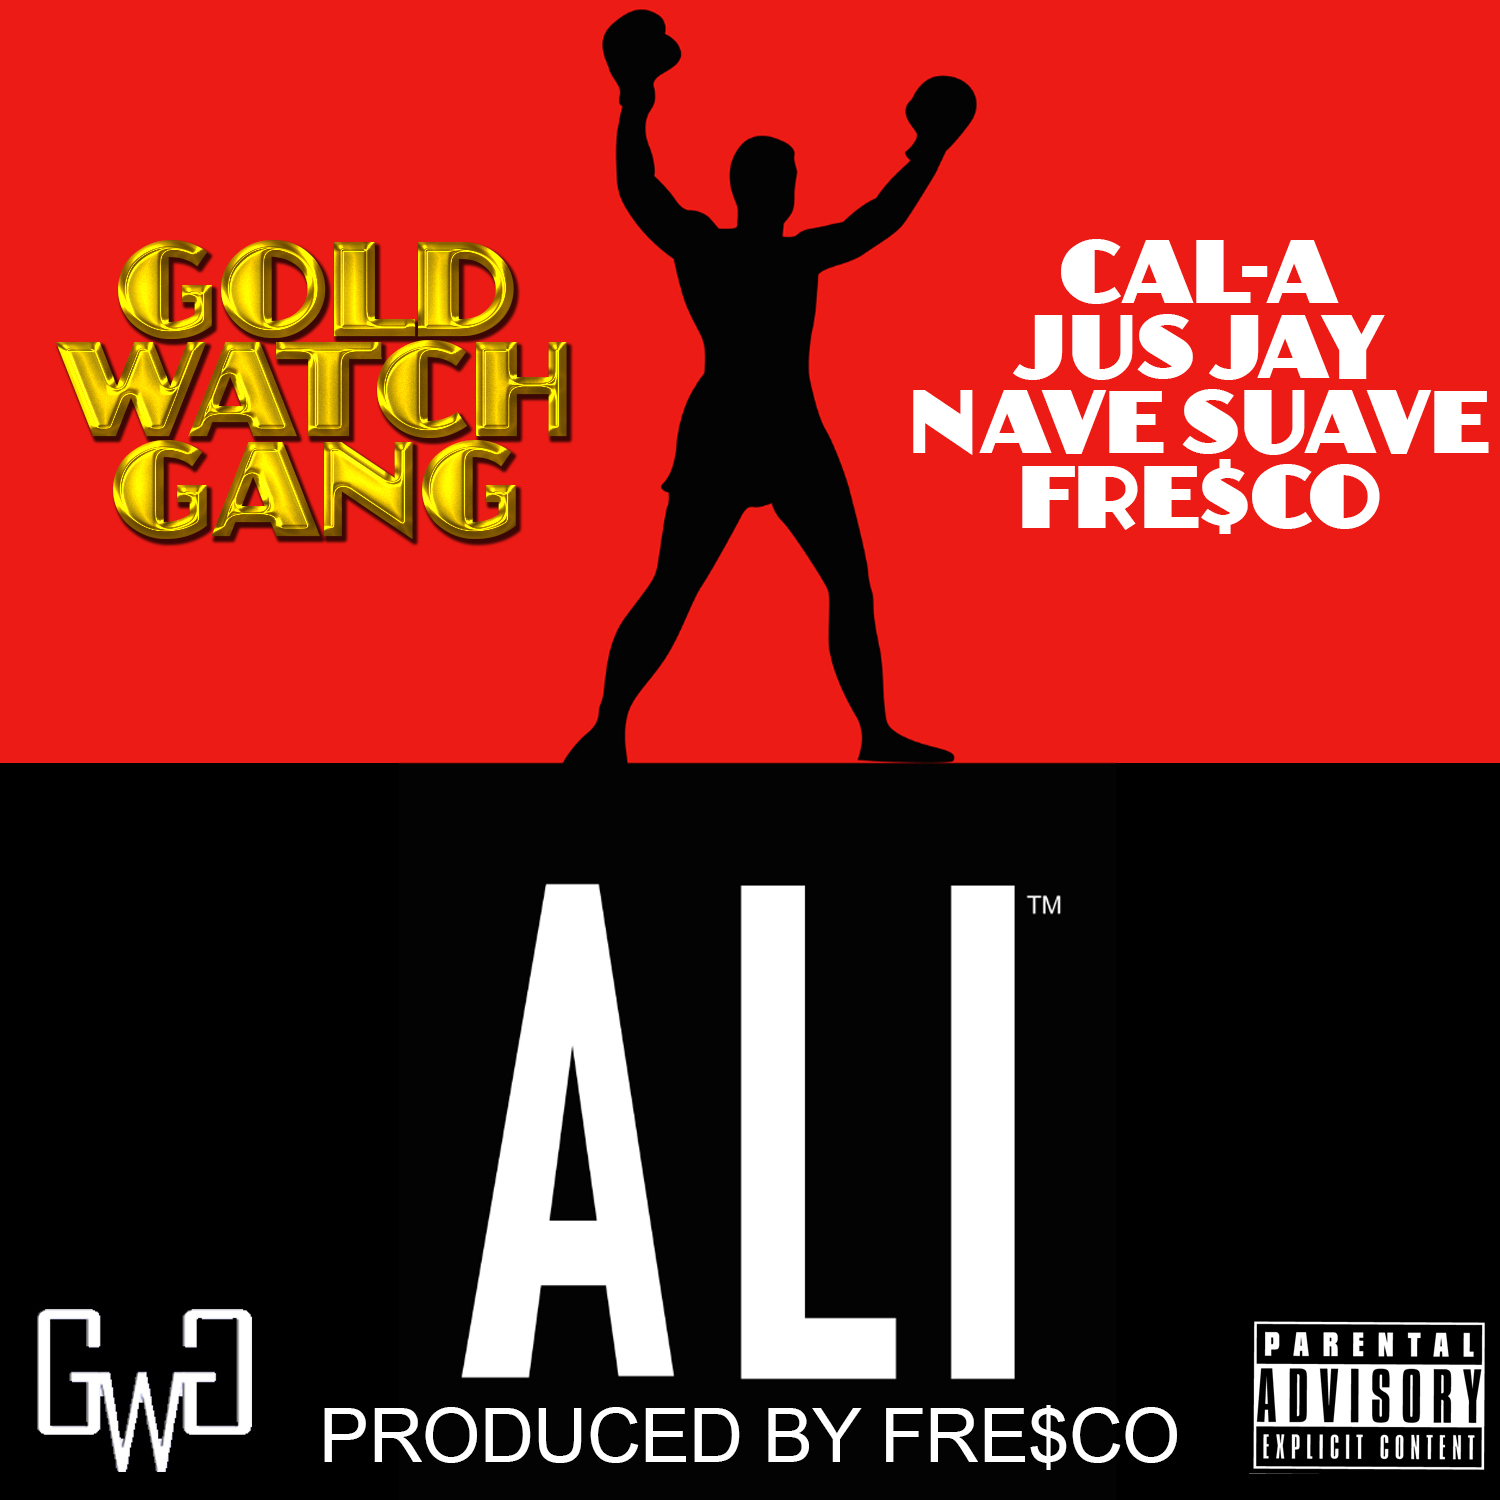 Gold Watch Gang - Ali (Cal A x Jusjay x Nave Suave x Fre$co) (Produced by Fre$co) [Thizzler.com]